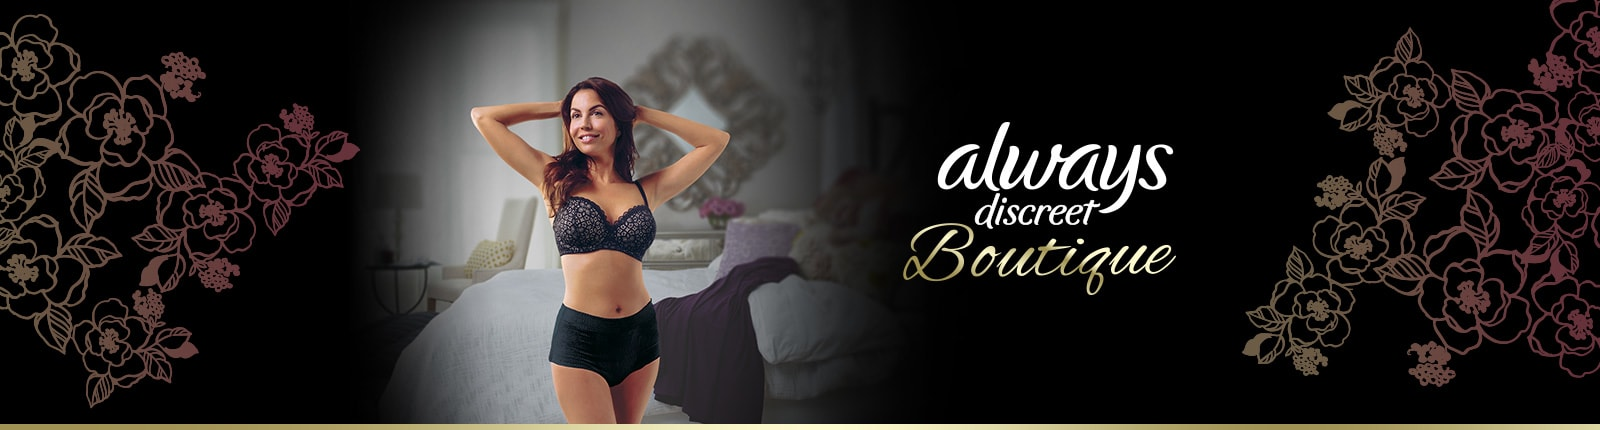 about-always-discreet-boutique-calcinha-para-incontinencia-urinaria